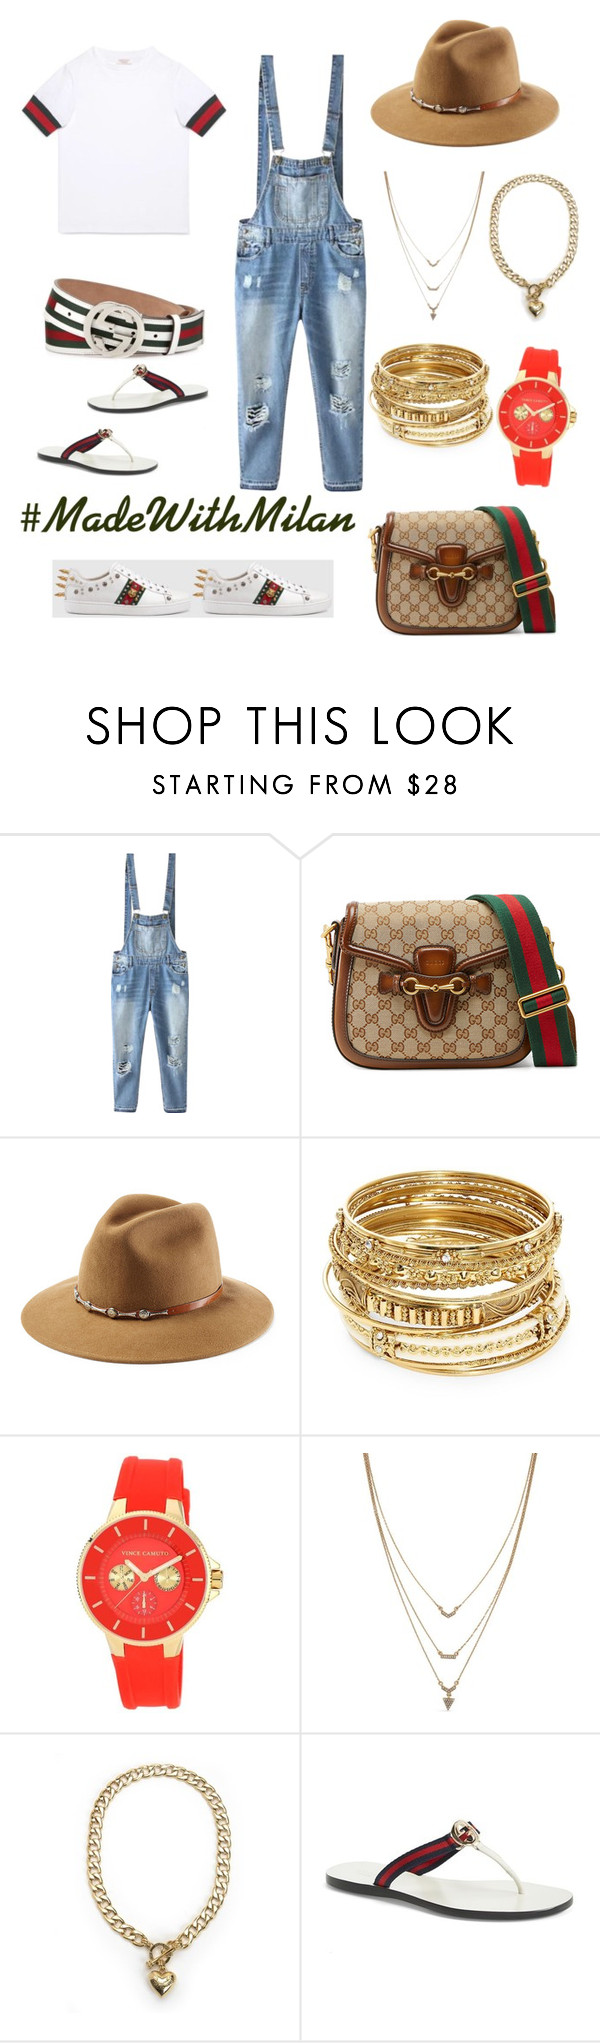 """Gucci 2x ❣"" by jaydamilan on Polyvore featuring Relaxfeel, Gucci, ále by Alessandra, ABS by Allen Schwartz, Vince Camuto, Jessica Simpson, Juicy Couture, gucci, allwhite and summerlook"